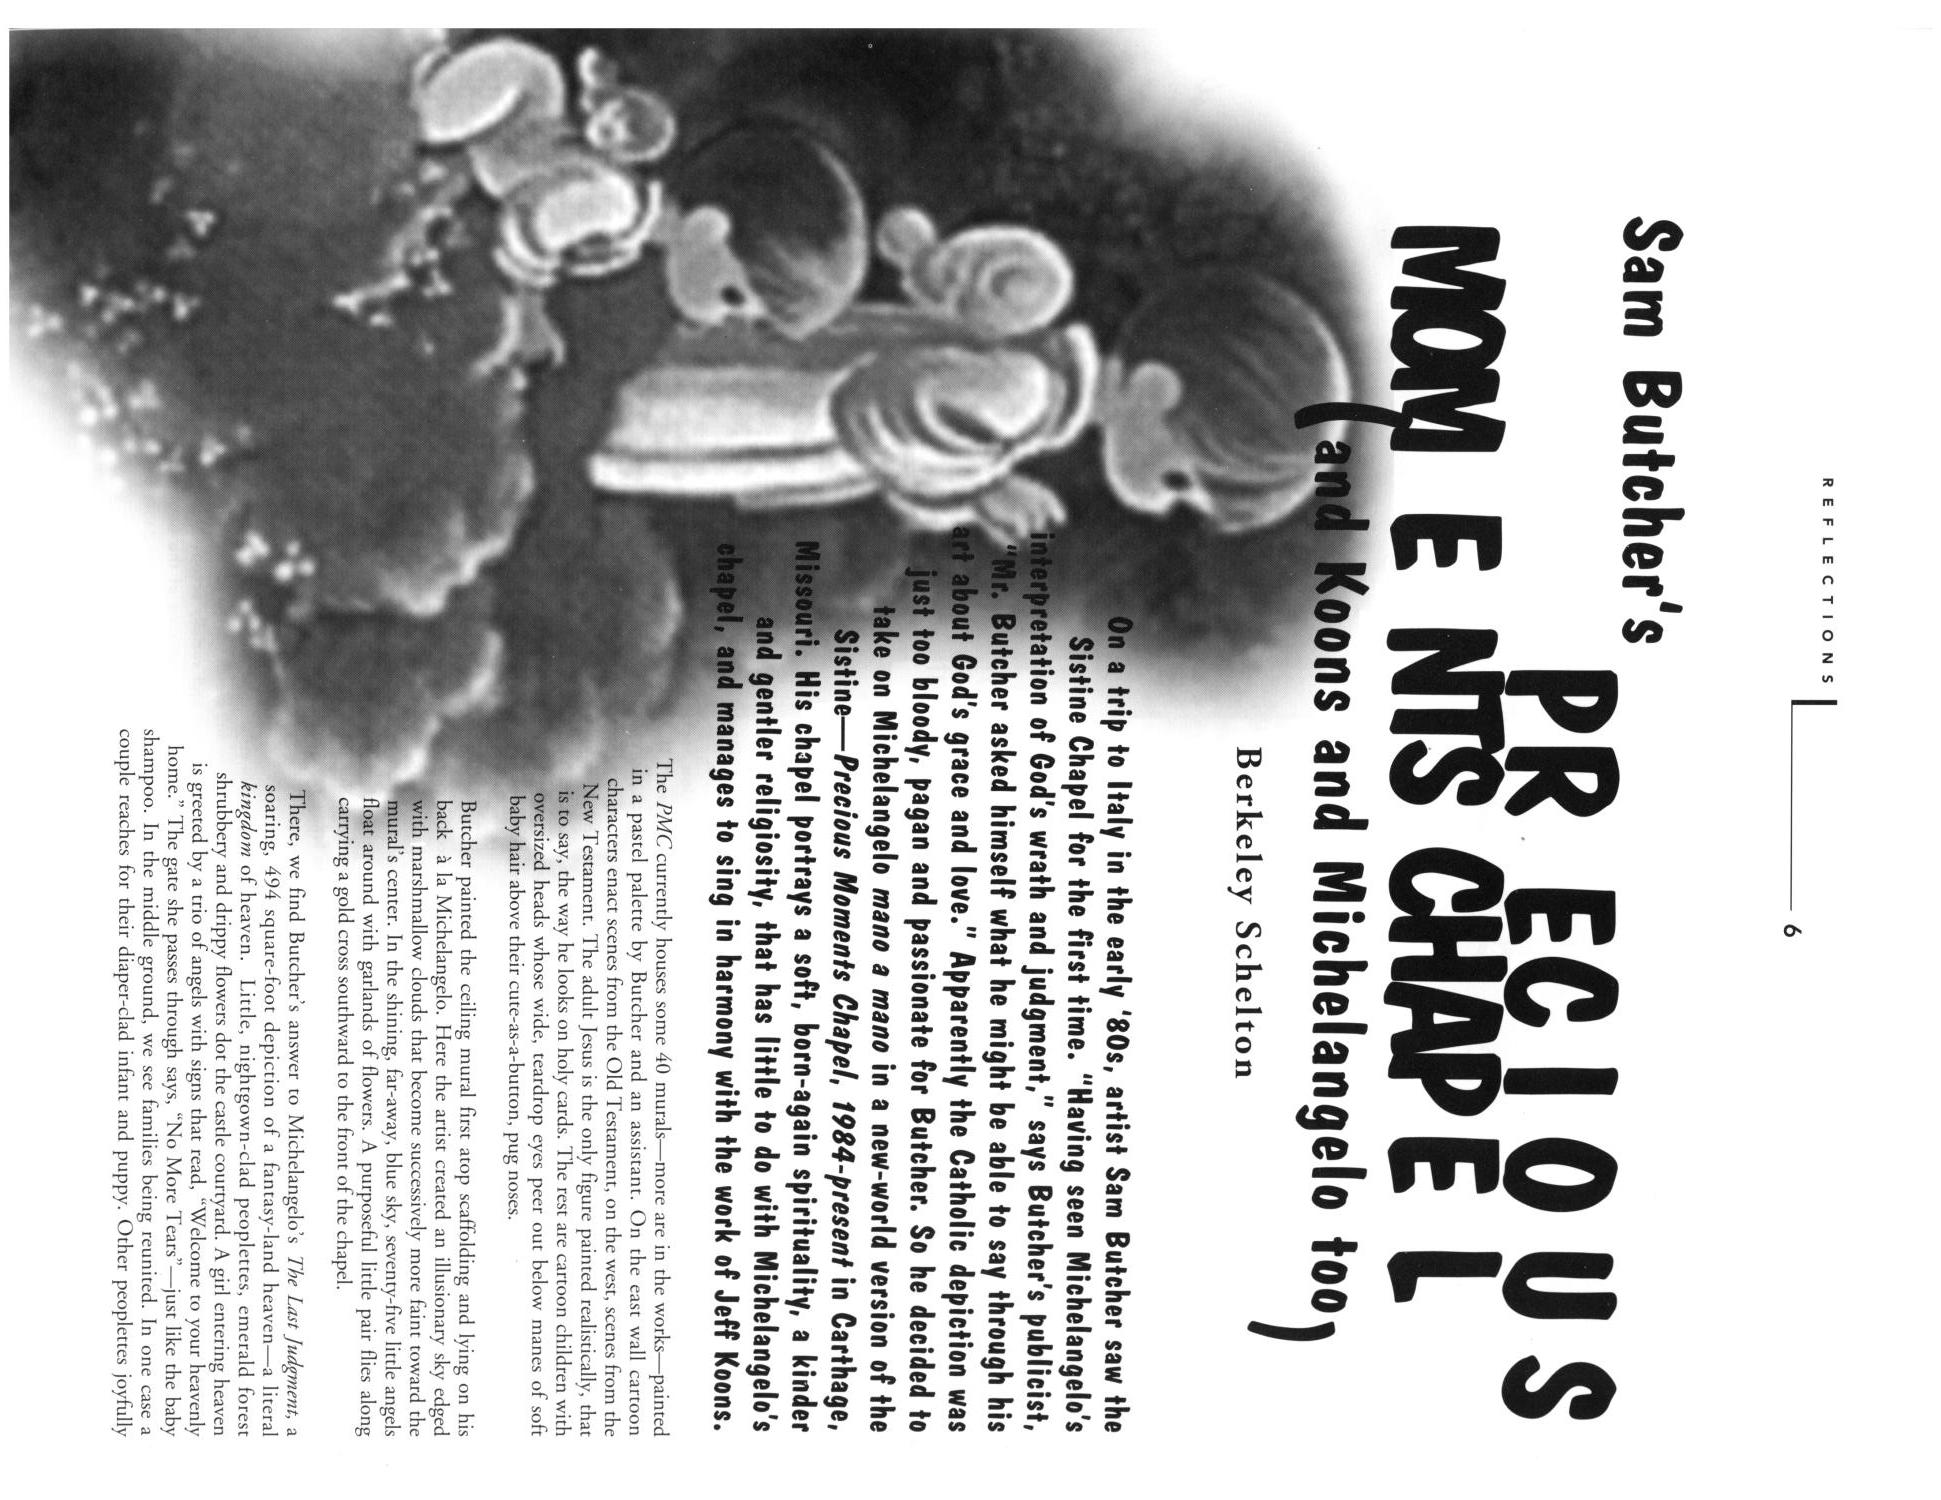 Art Lies, Volume 1, March 1994                                                                                                      6